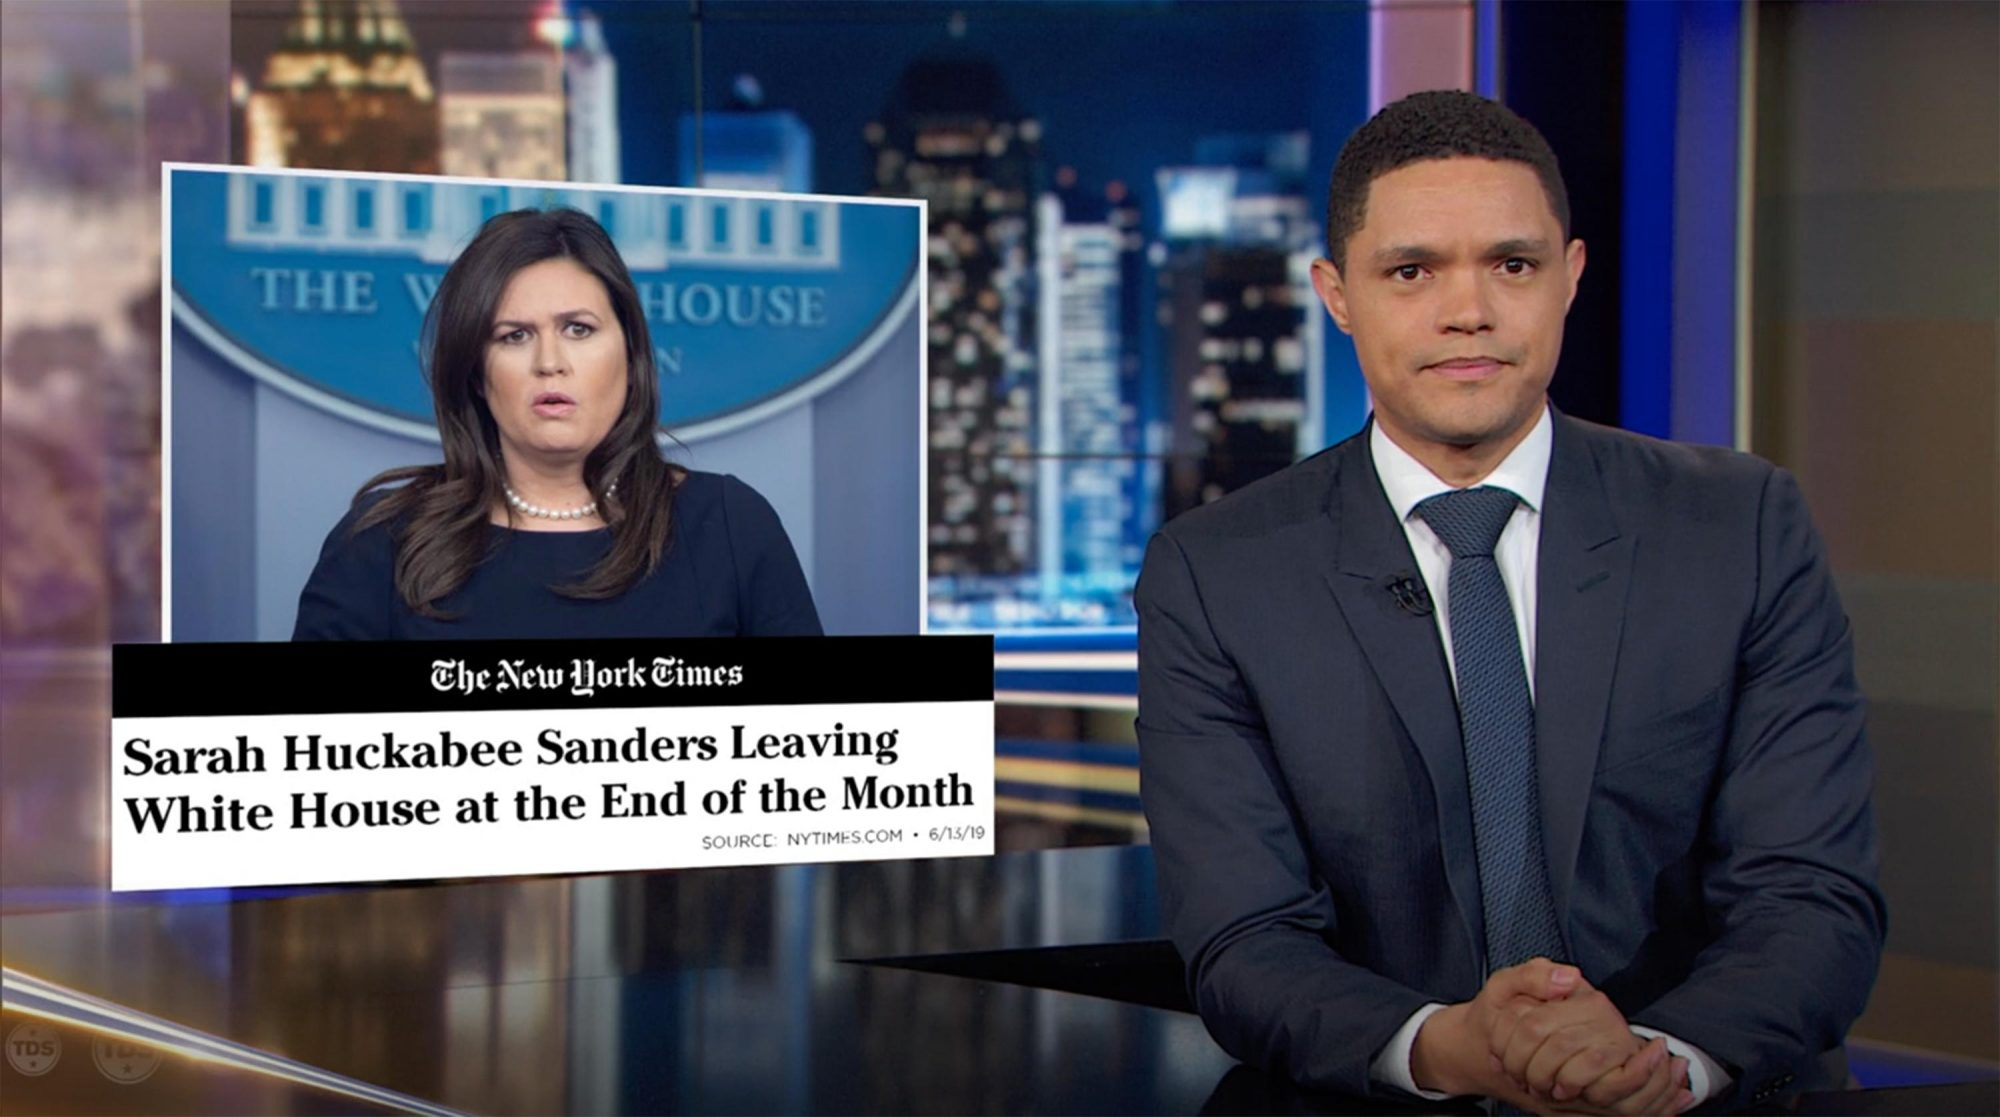 The Daily Show with Trevor Noah screen grab